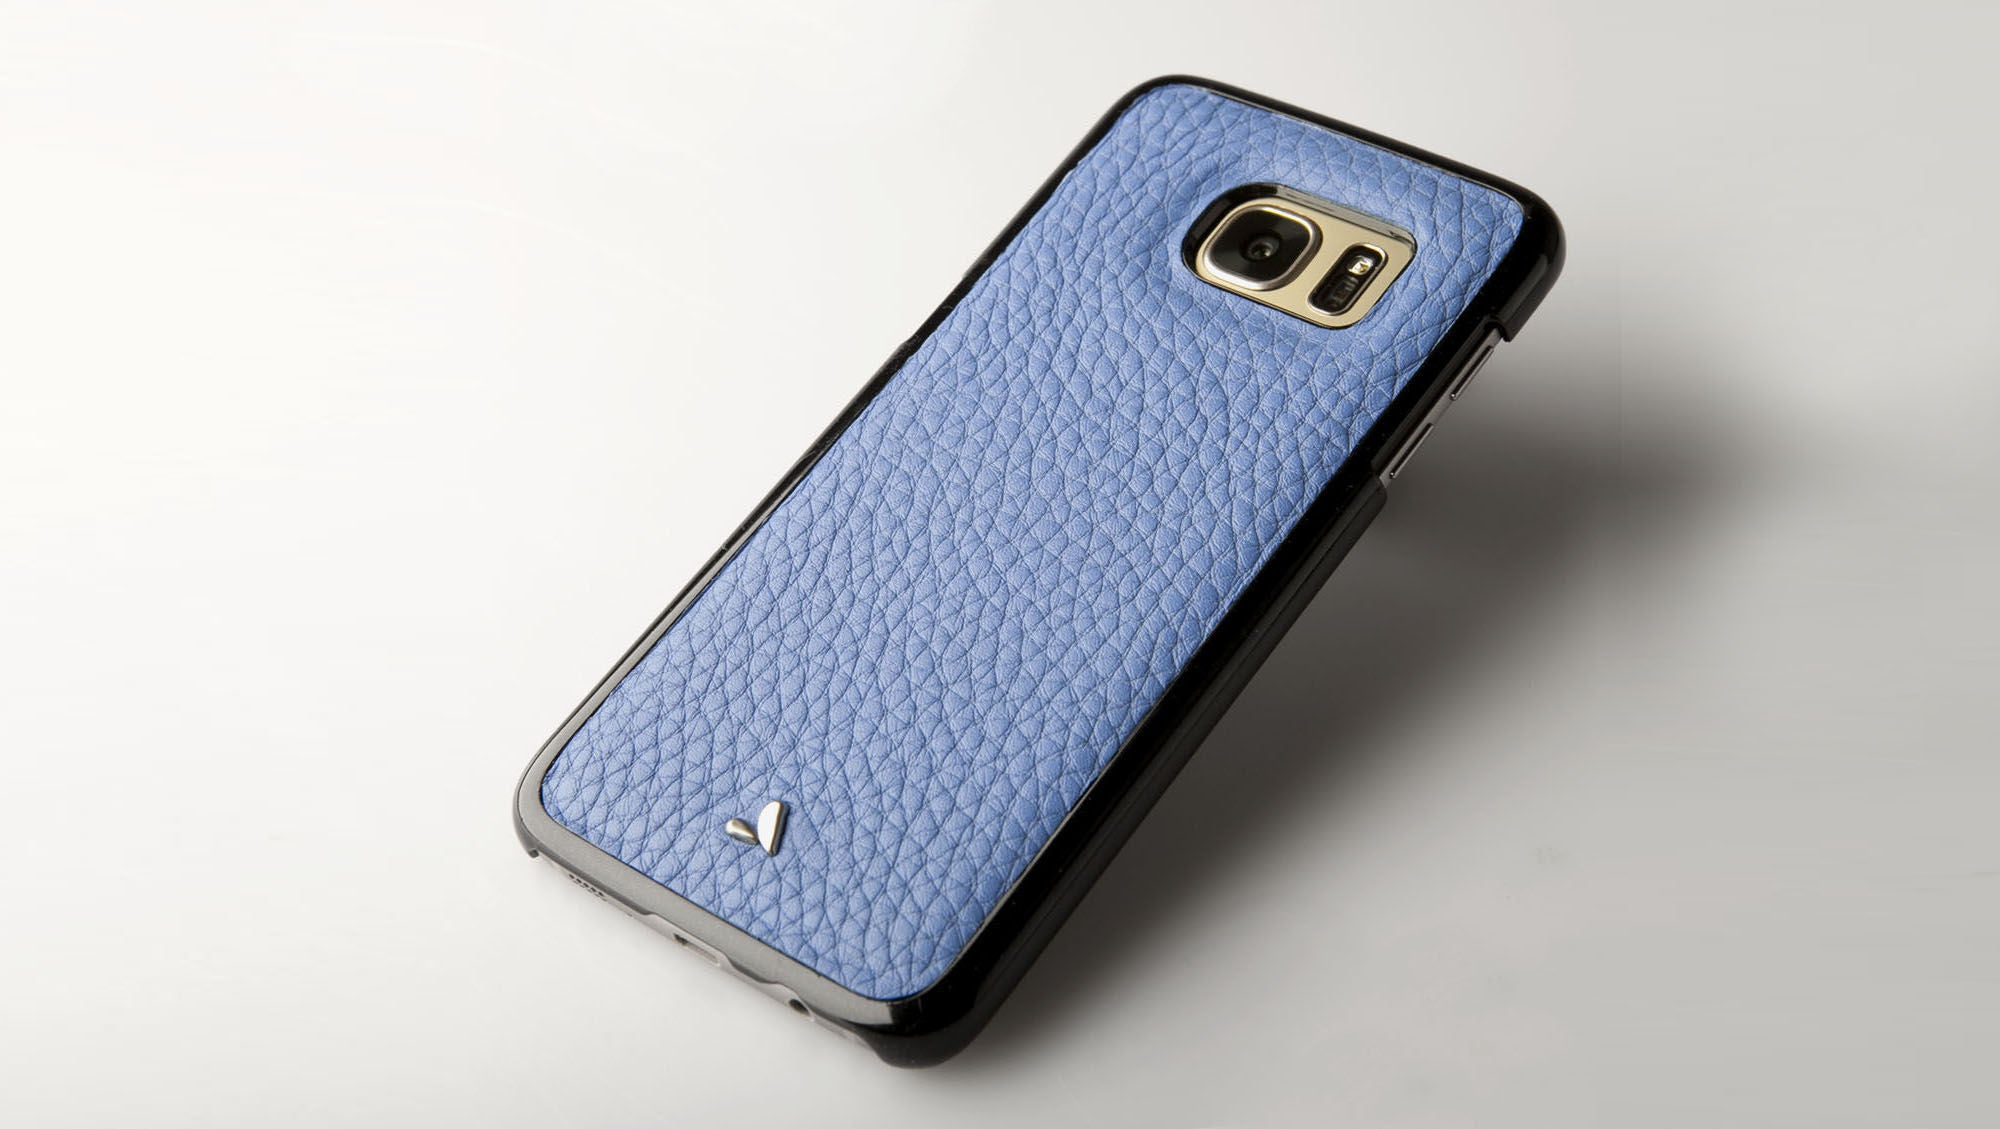 Samsung Galaxy S7 Edge Leather Grip